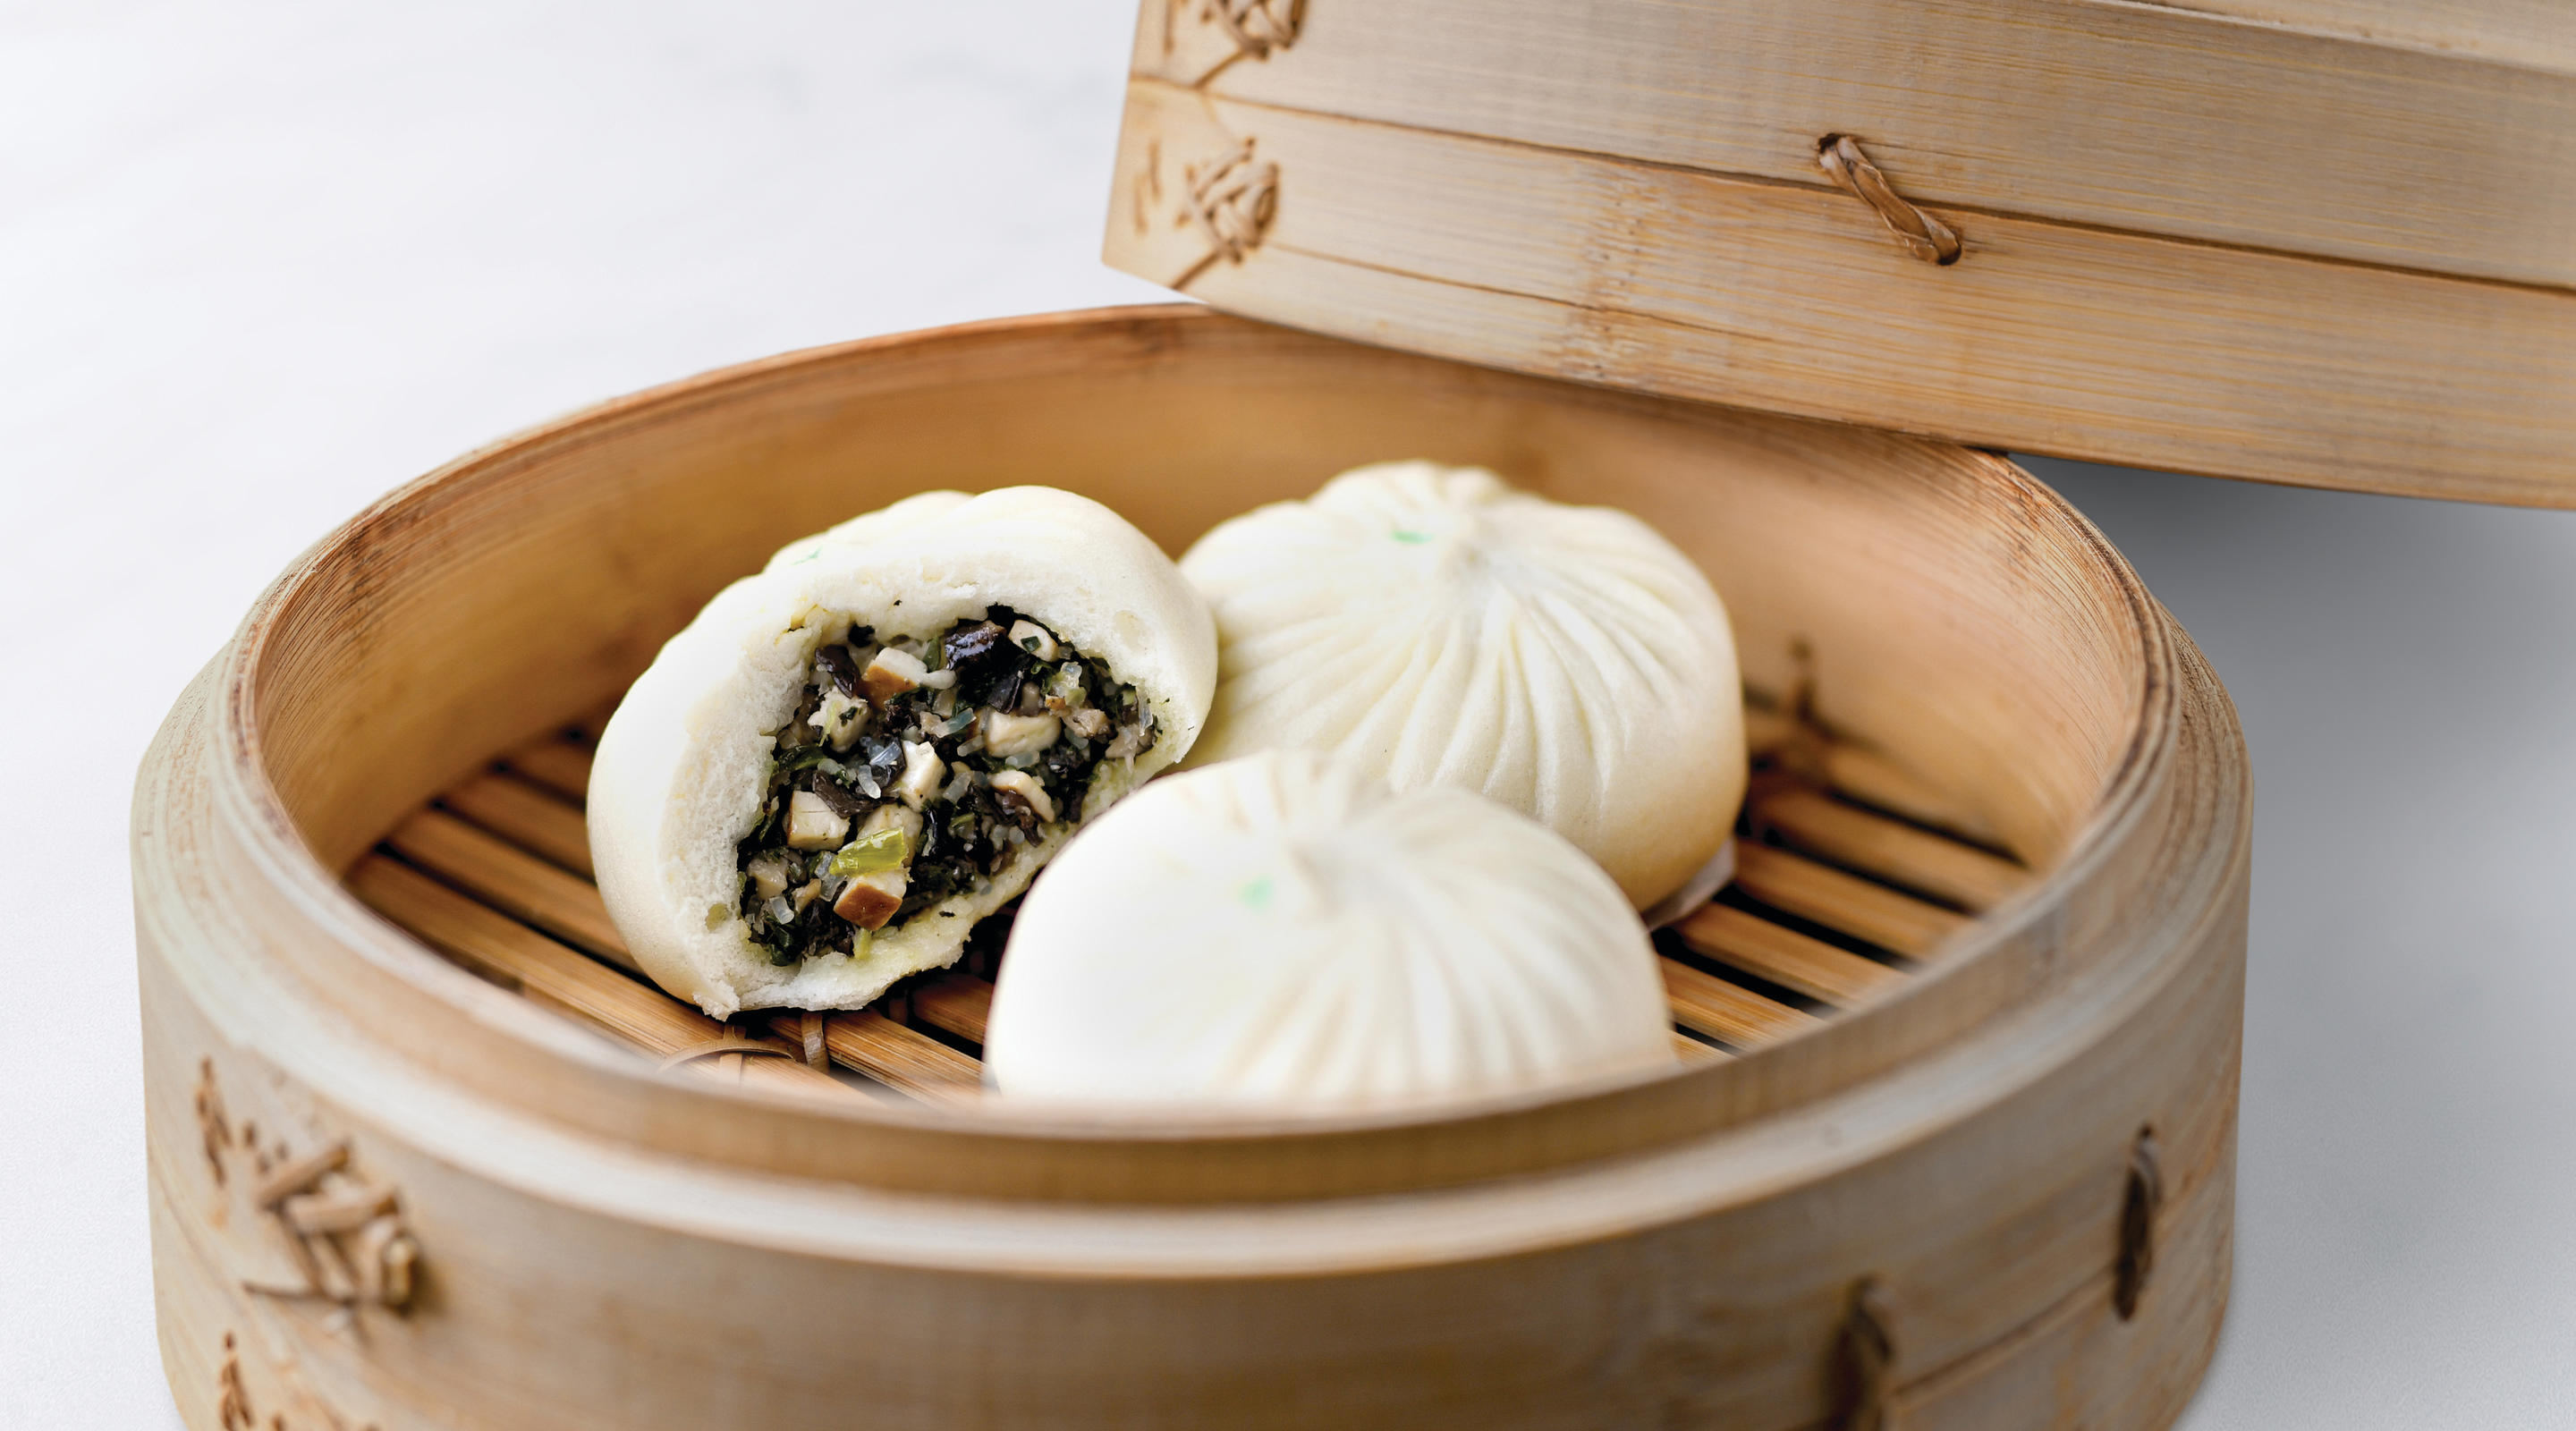 Steamed buns filled with mushroom and vegetables.